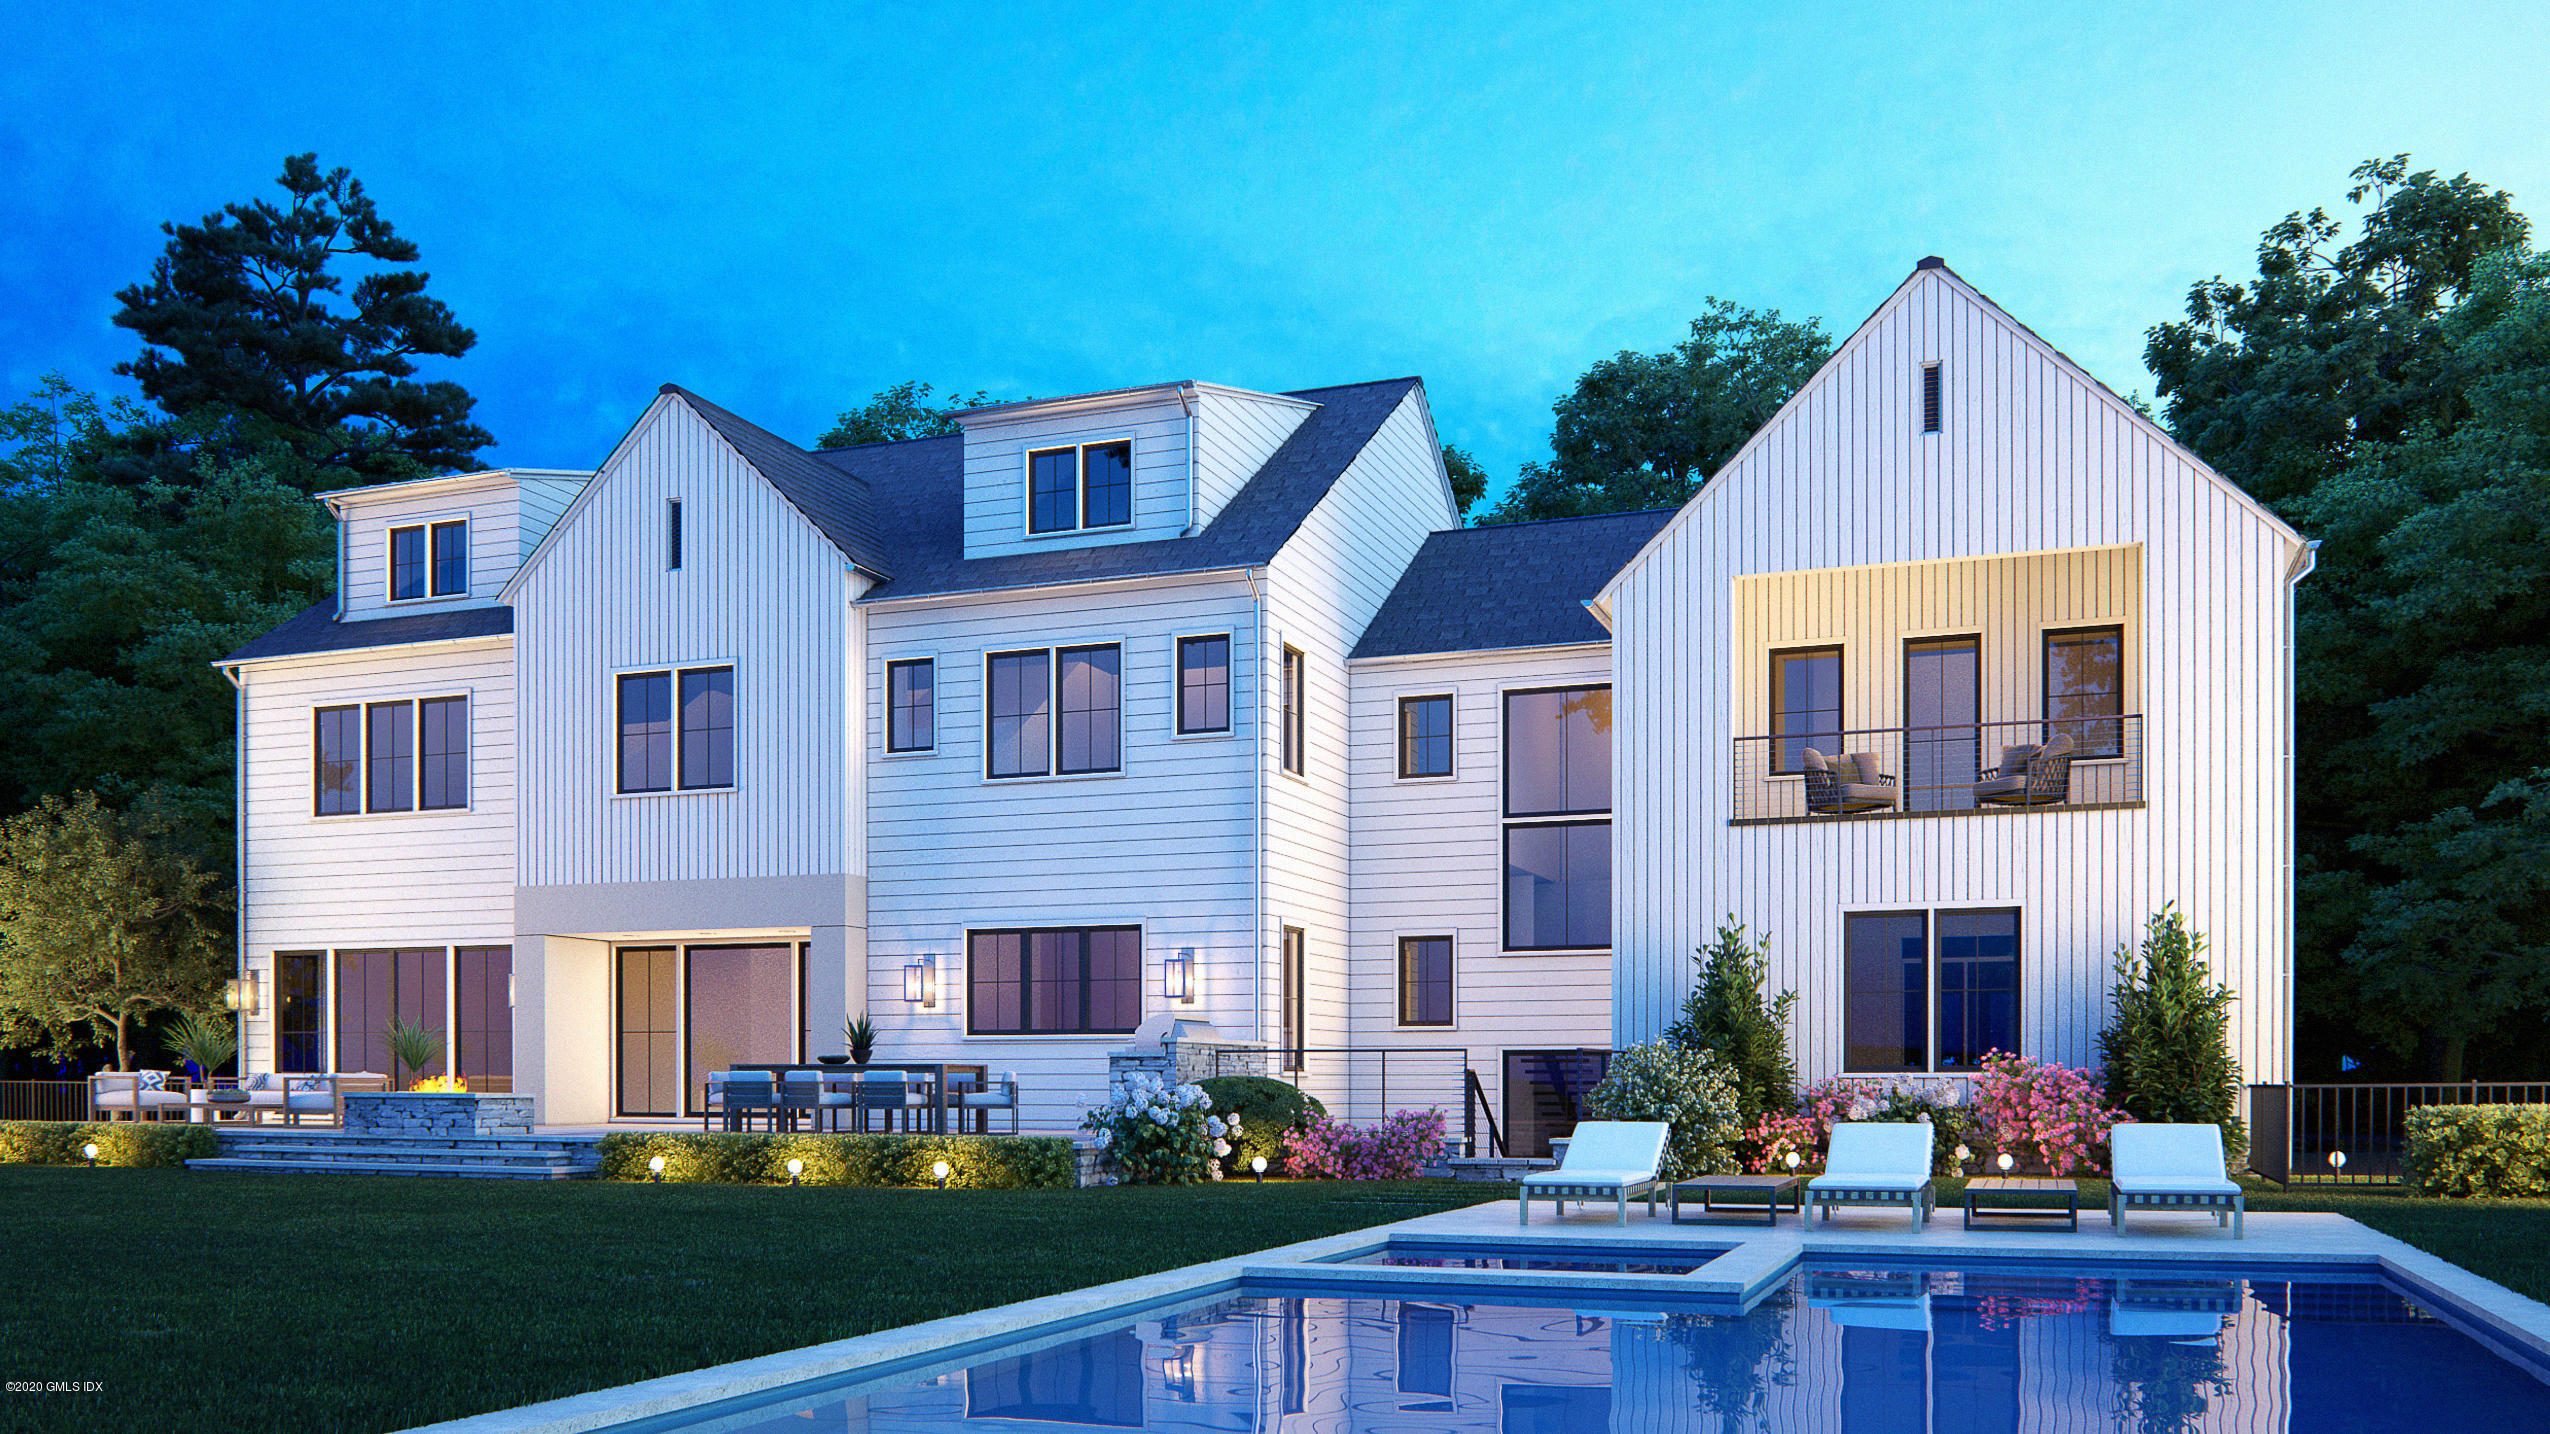 11 Turner Drive,Greenwich,Connecticut 06831,6 Bedrooms Bedrooms,8 Rooms Rooms,6 BathroomsBathrooms,Single family,Turner,108470